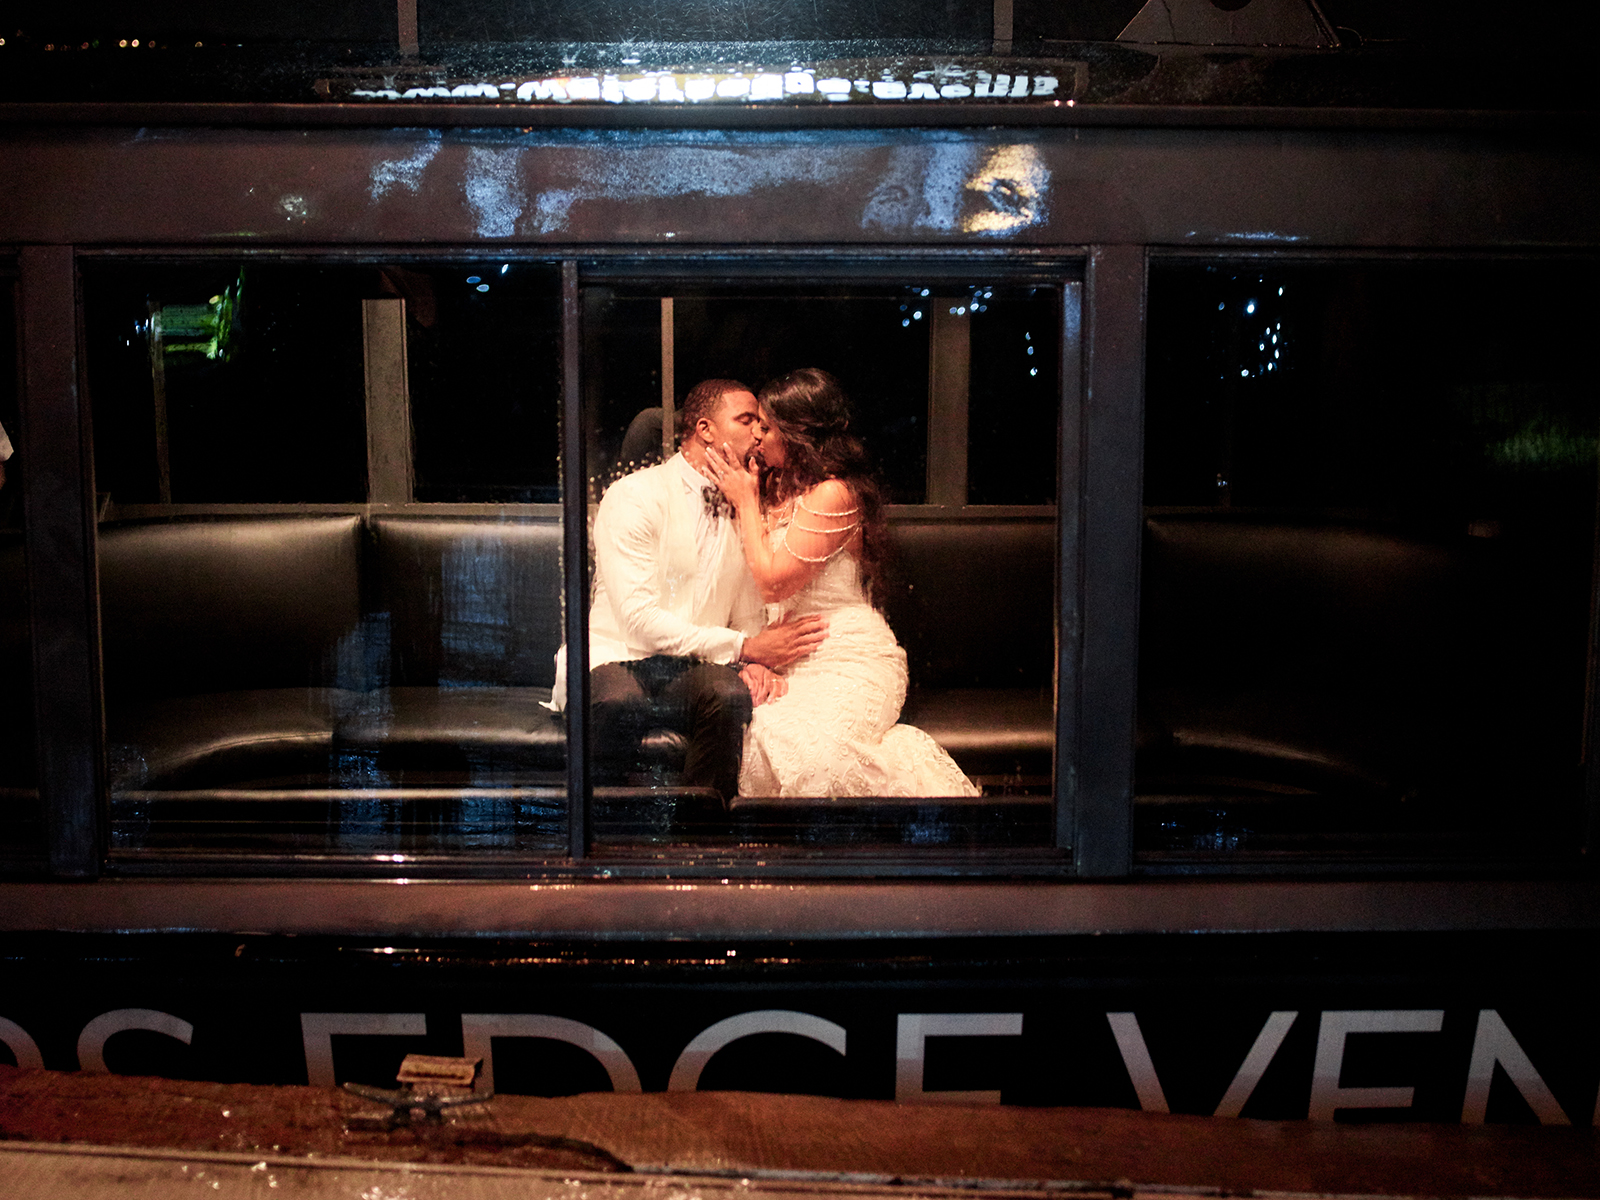 boat - transportation - wedding - just married